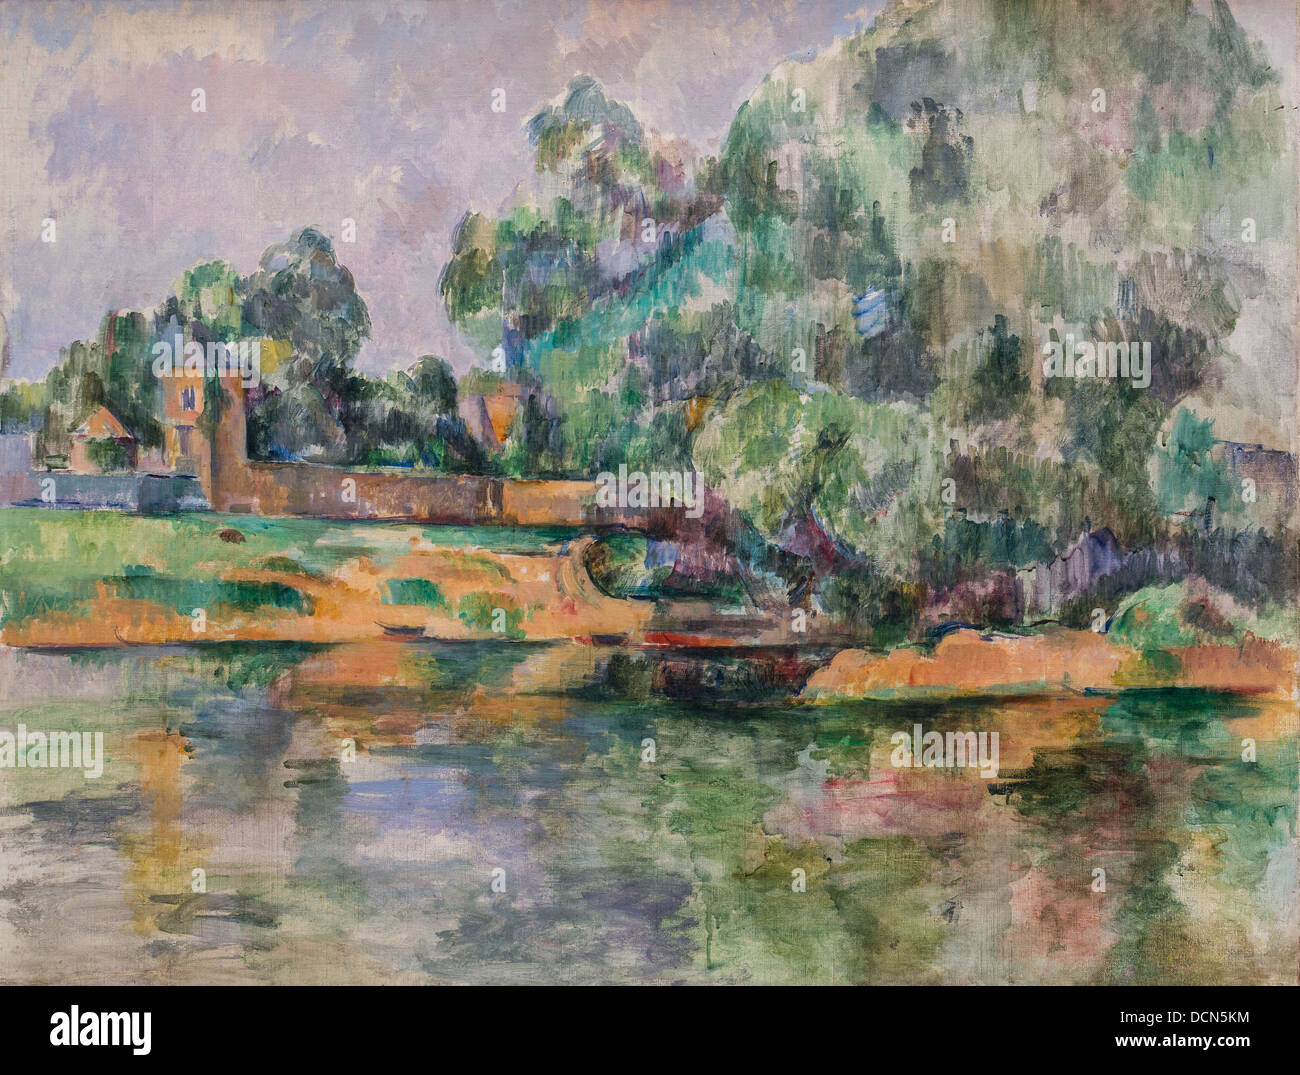 19th century  -  Riverbank - Paul Cézanne (1895) Philippe Sauvan-Magnet / Active Museum - Stock Image